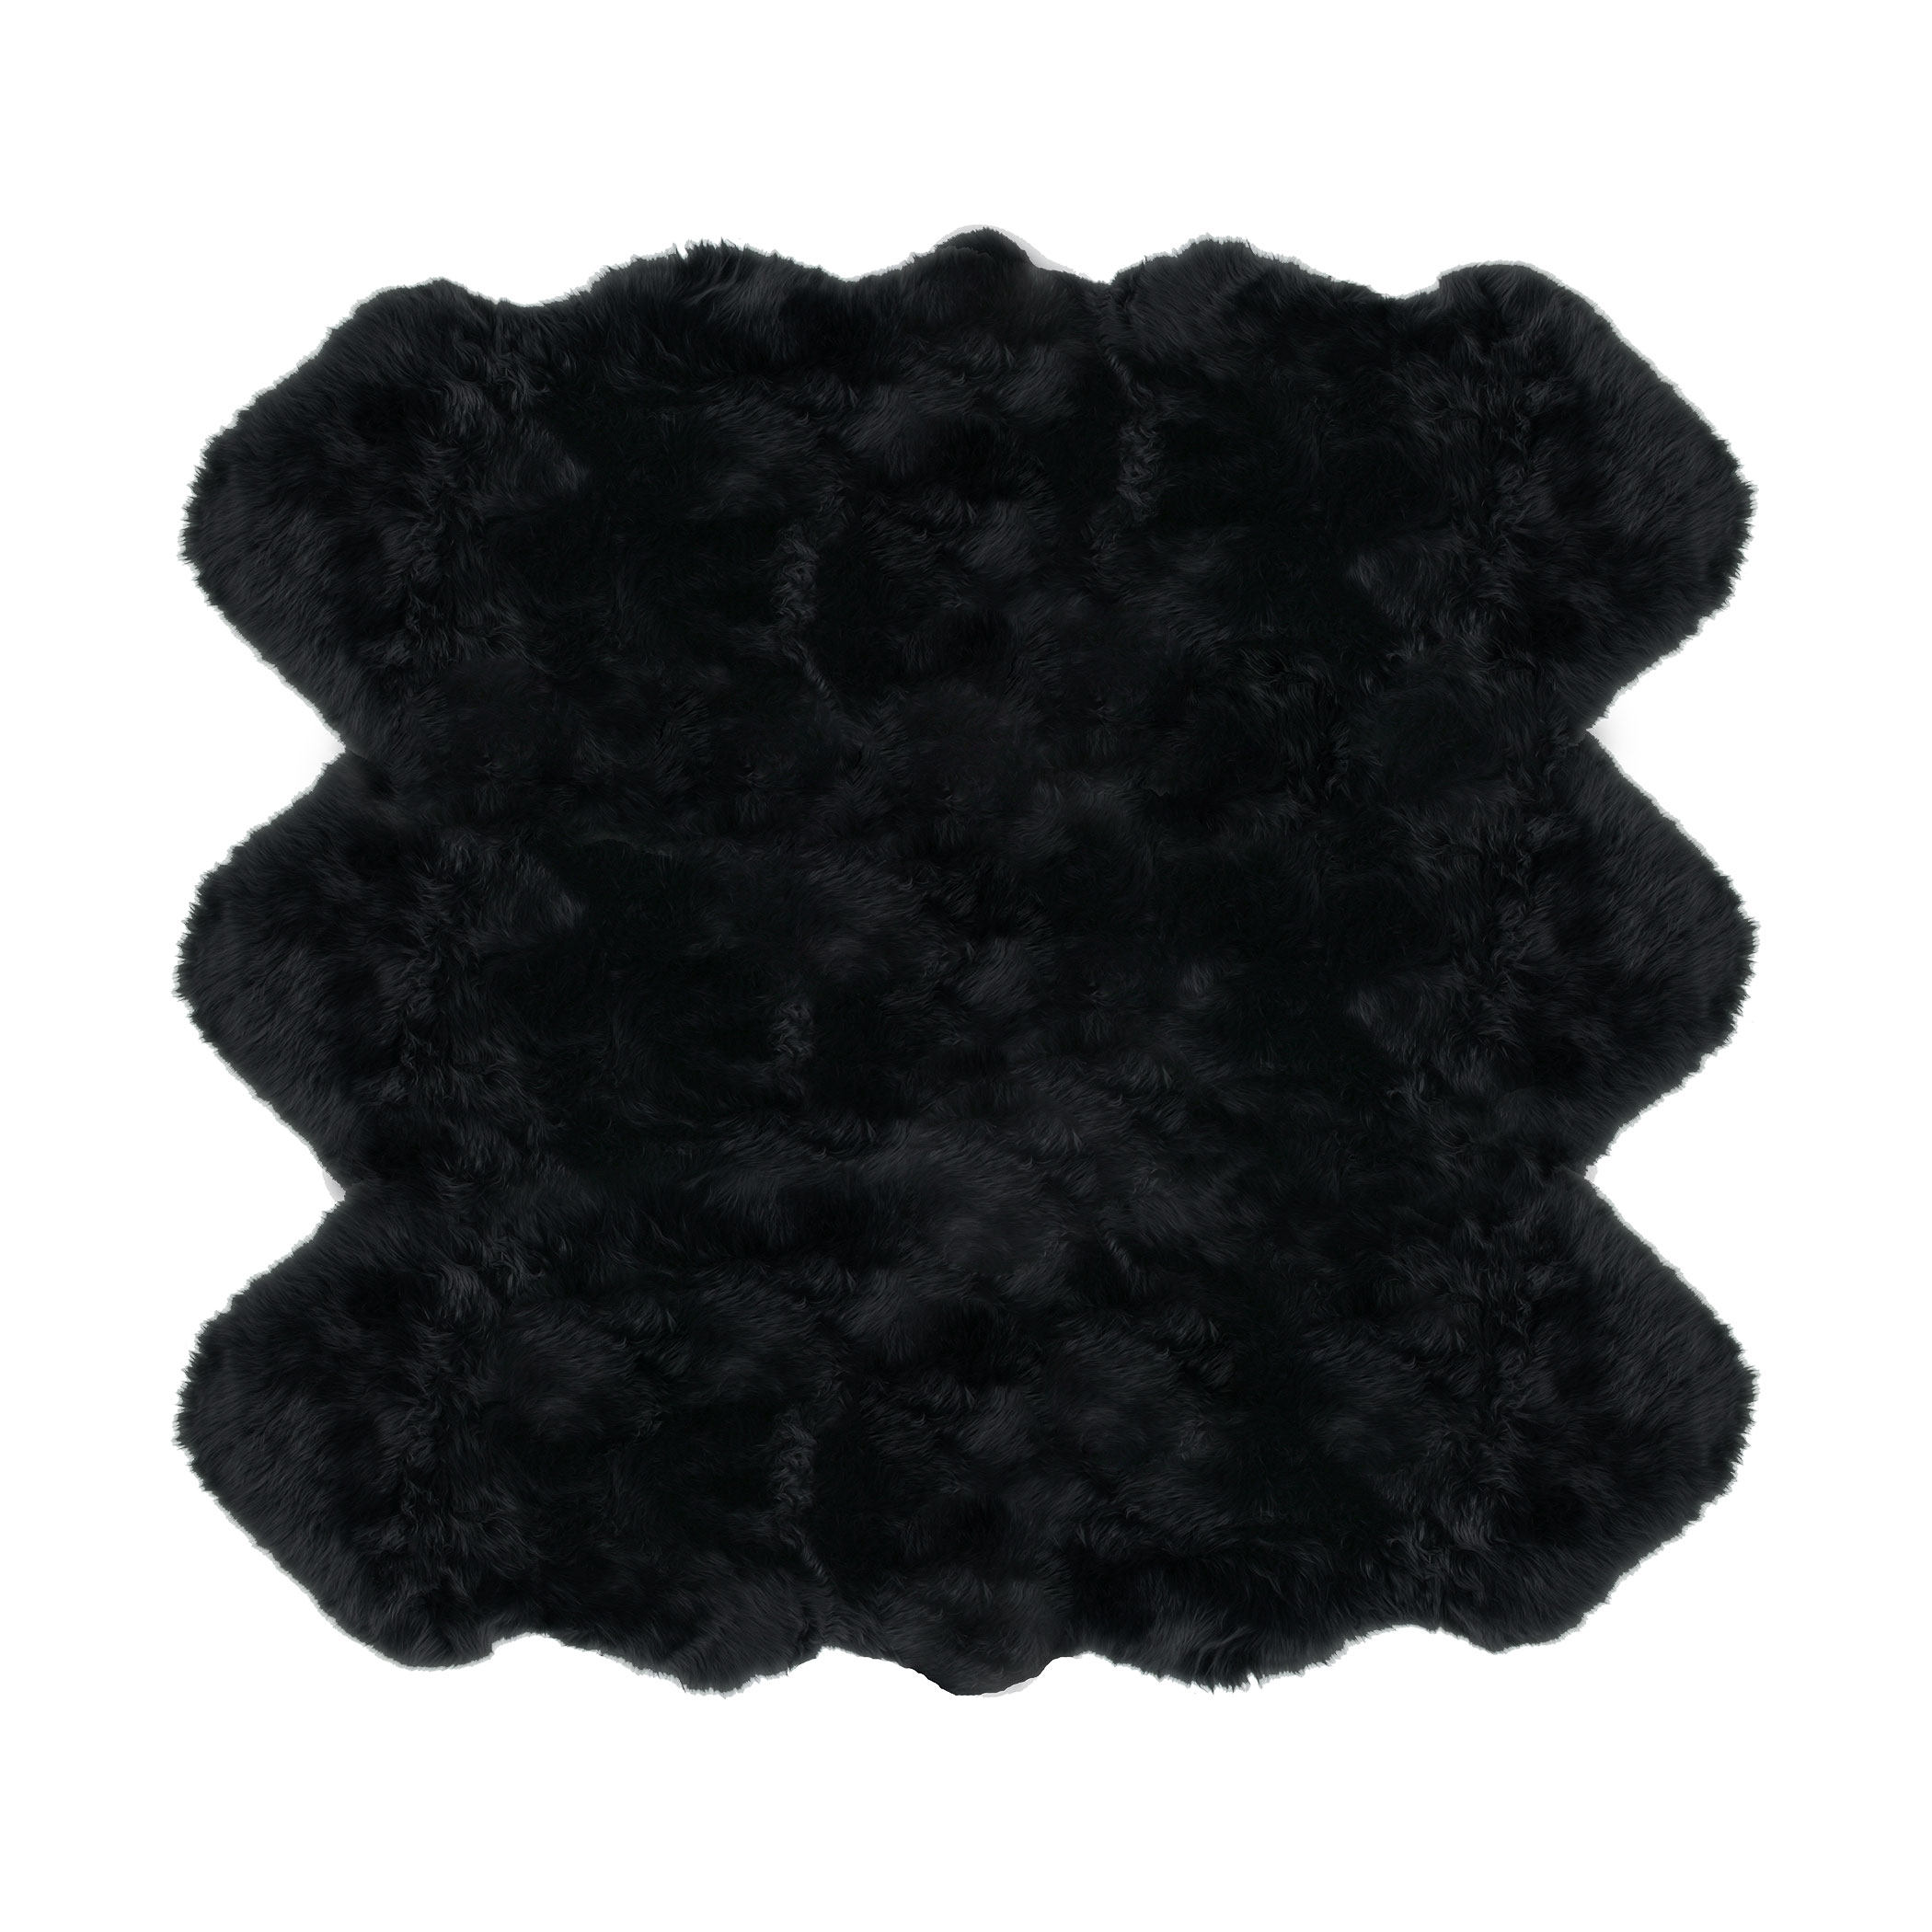 Sheepskin Rug 6 Pelt Black